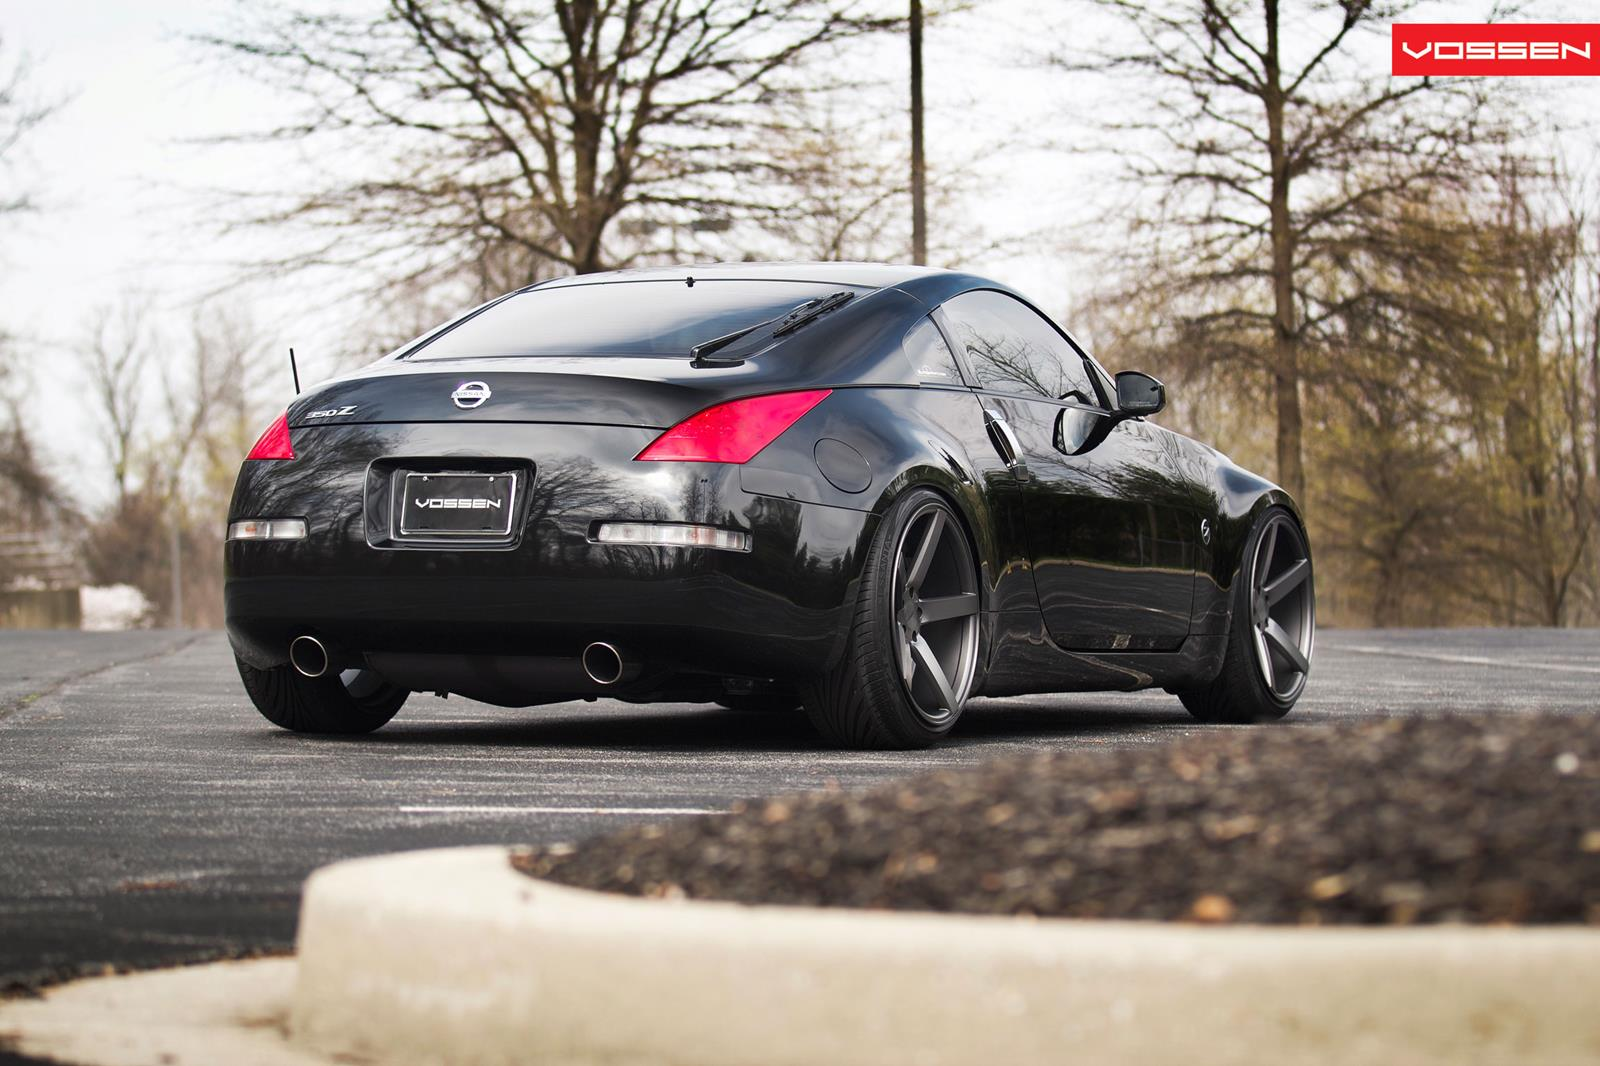 nissan 350z vossen cv3r vossen wheels. Black Bedroom Furniture Sets. Home Design Ideas